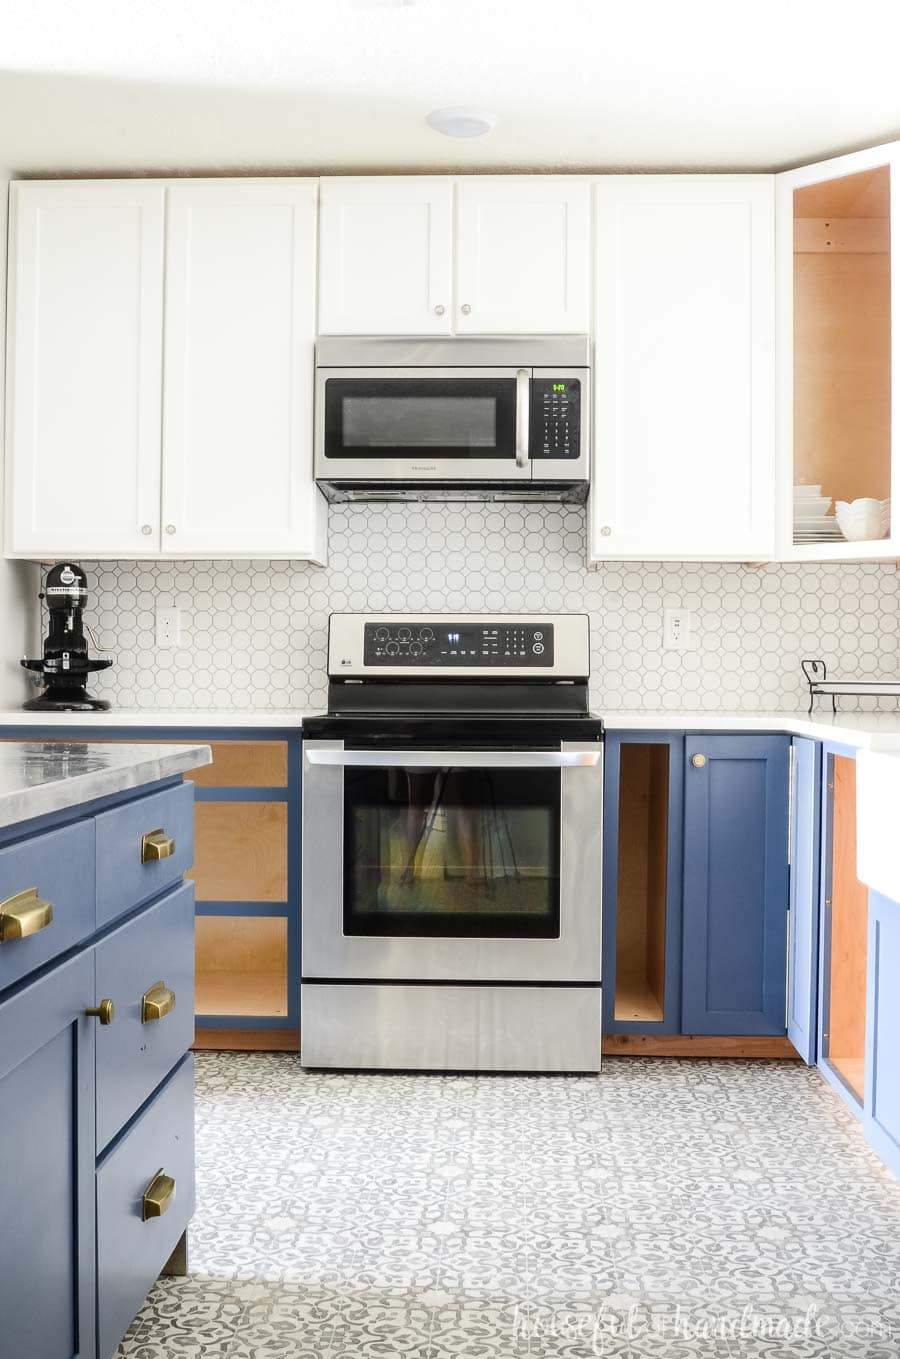 A complete kitchen remodel on a budget is possible. We turned our outdated kitchen into a bright farmhouse space with white wall cabinets and navy base cabinets. Housefulofhandmade.com